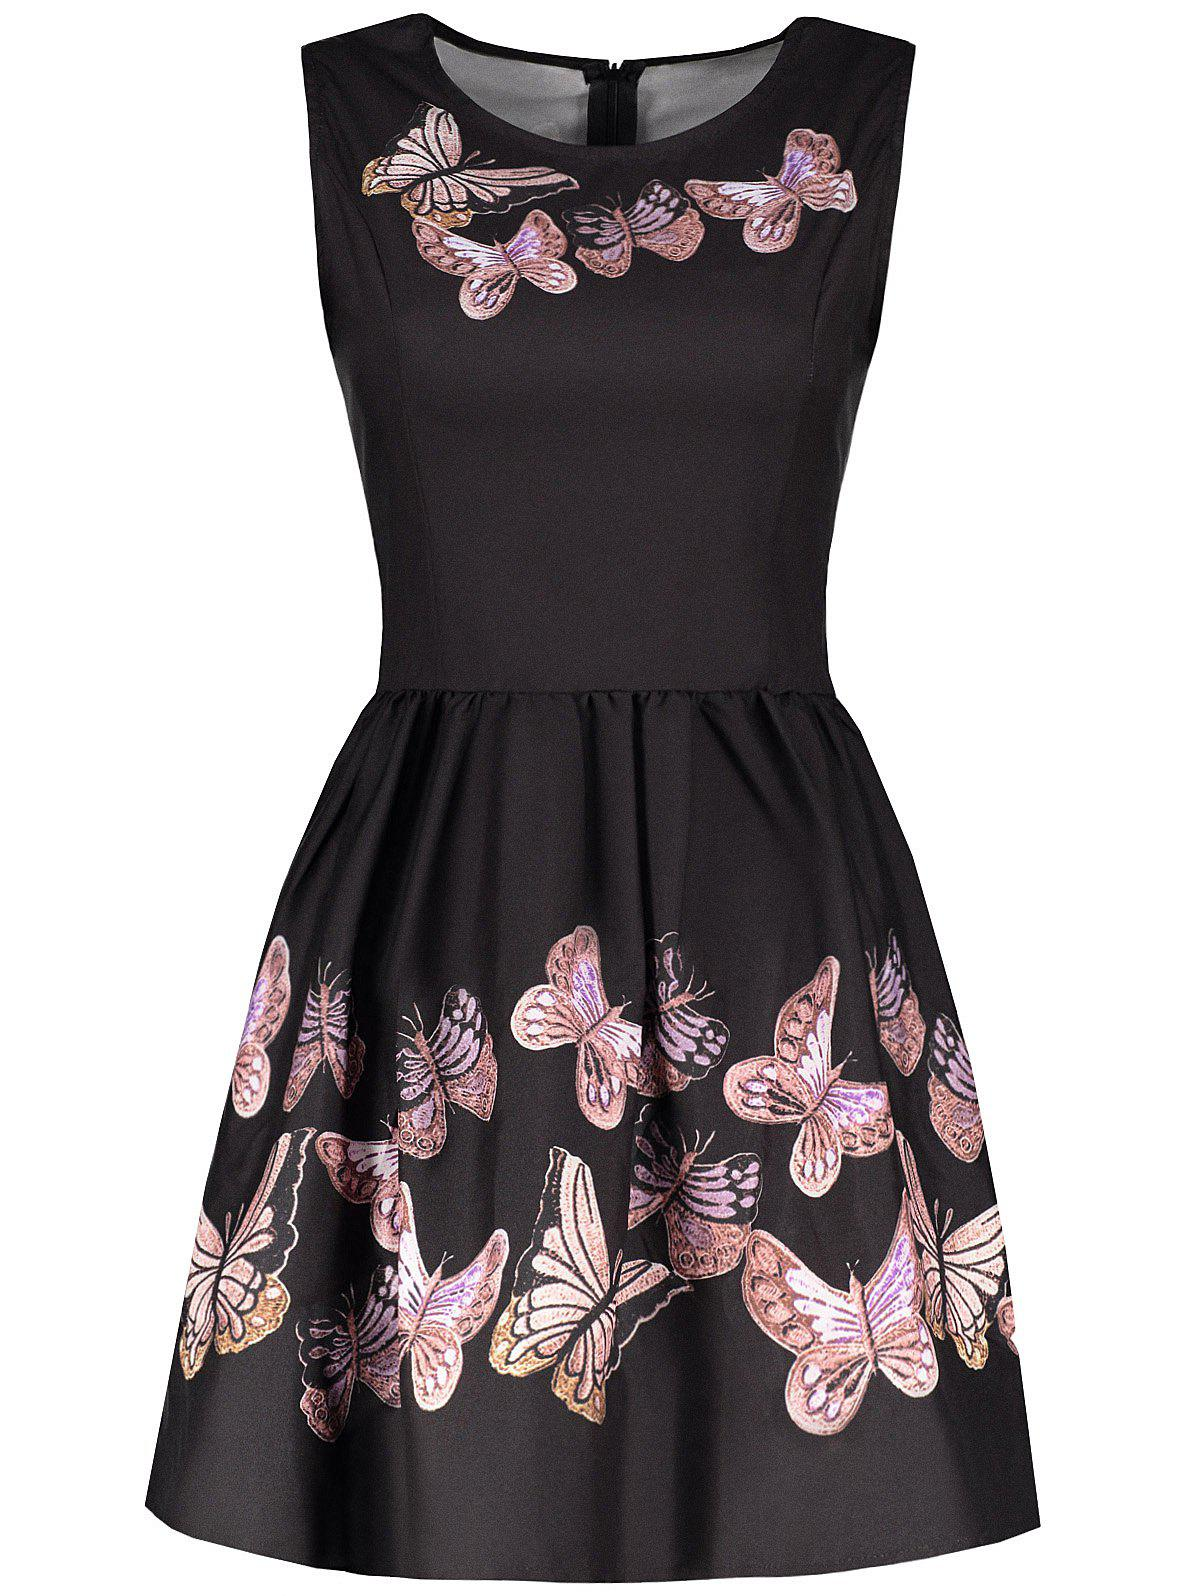 Vintage Sleeveless Round Collar Butterflies Print Women's Ball Gown Dress - BLACK XL